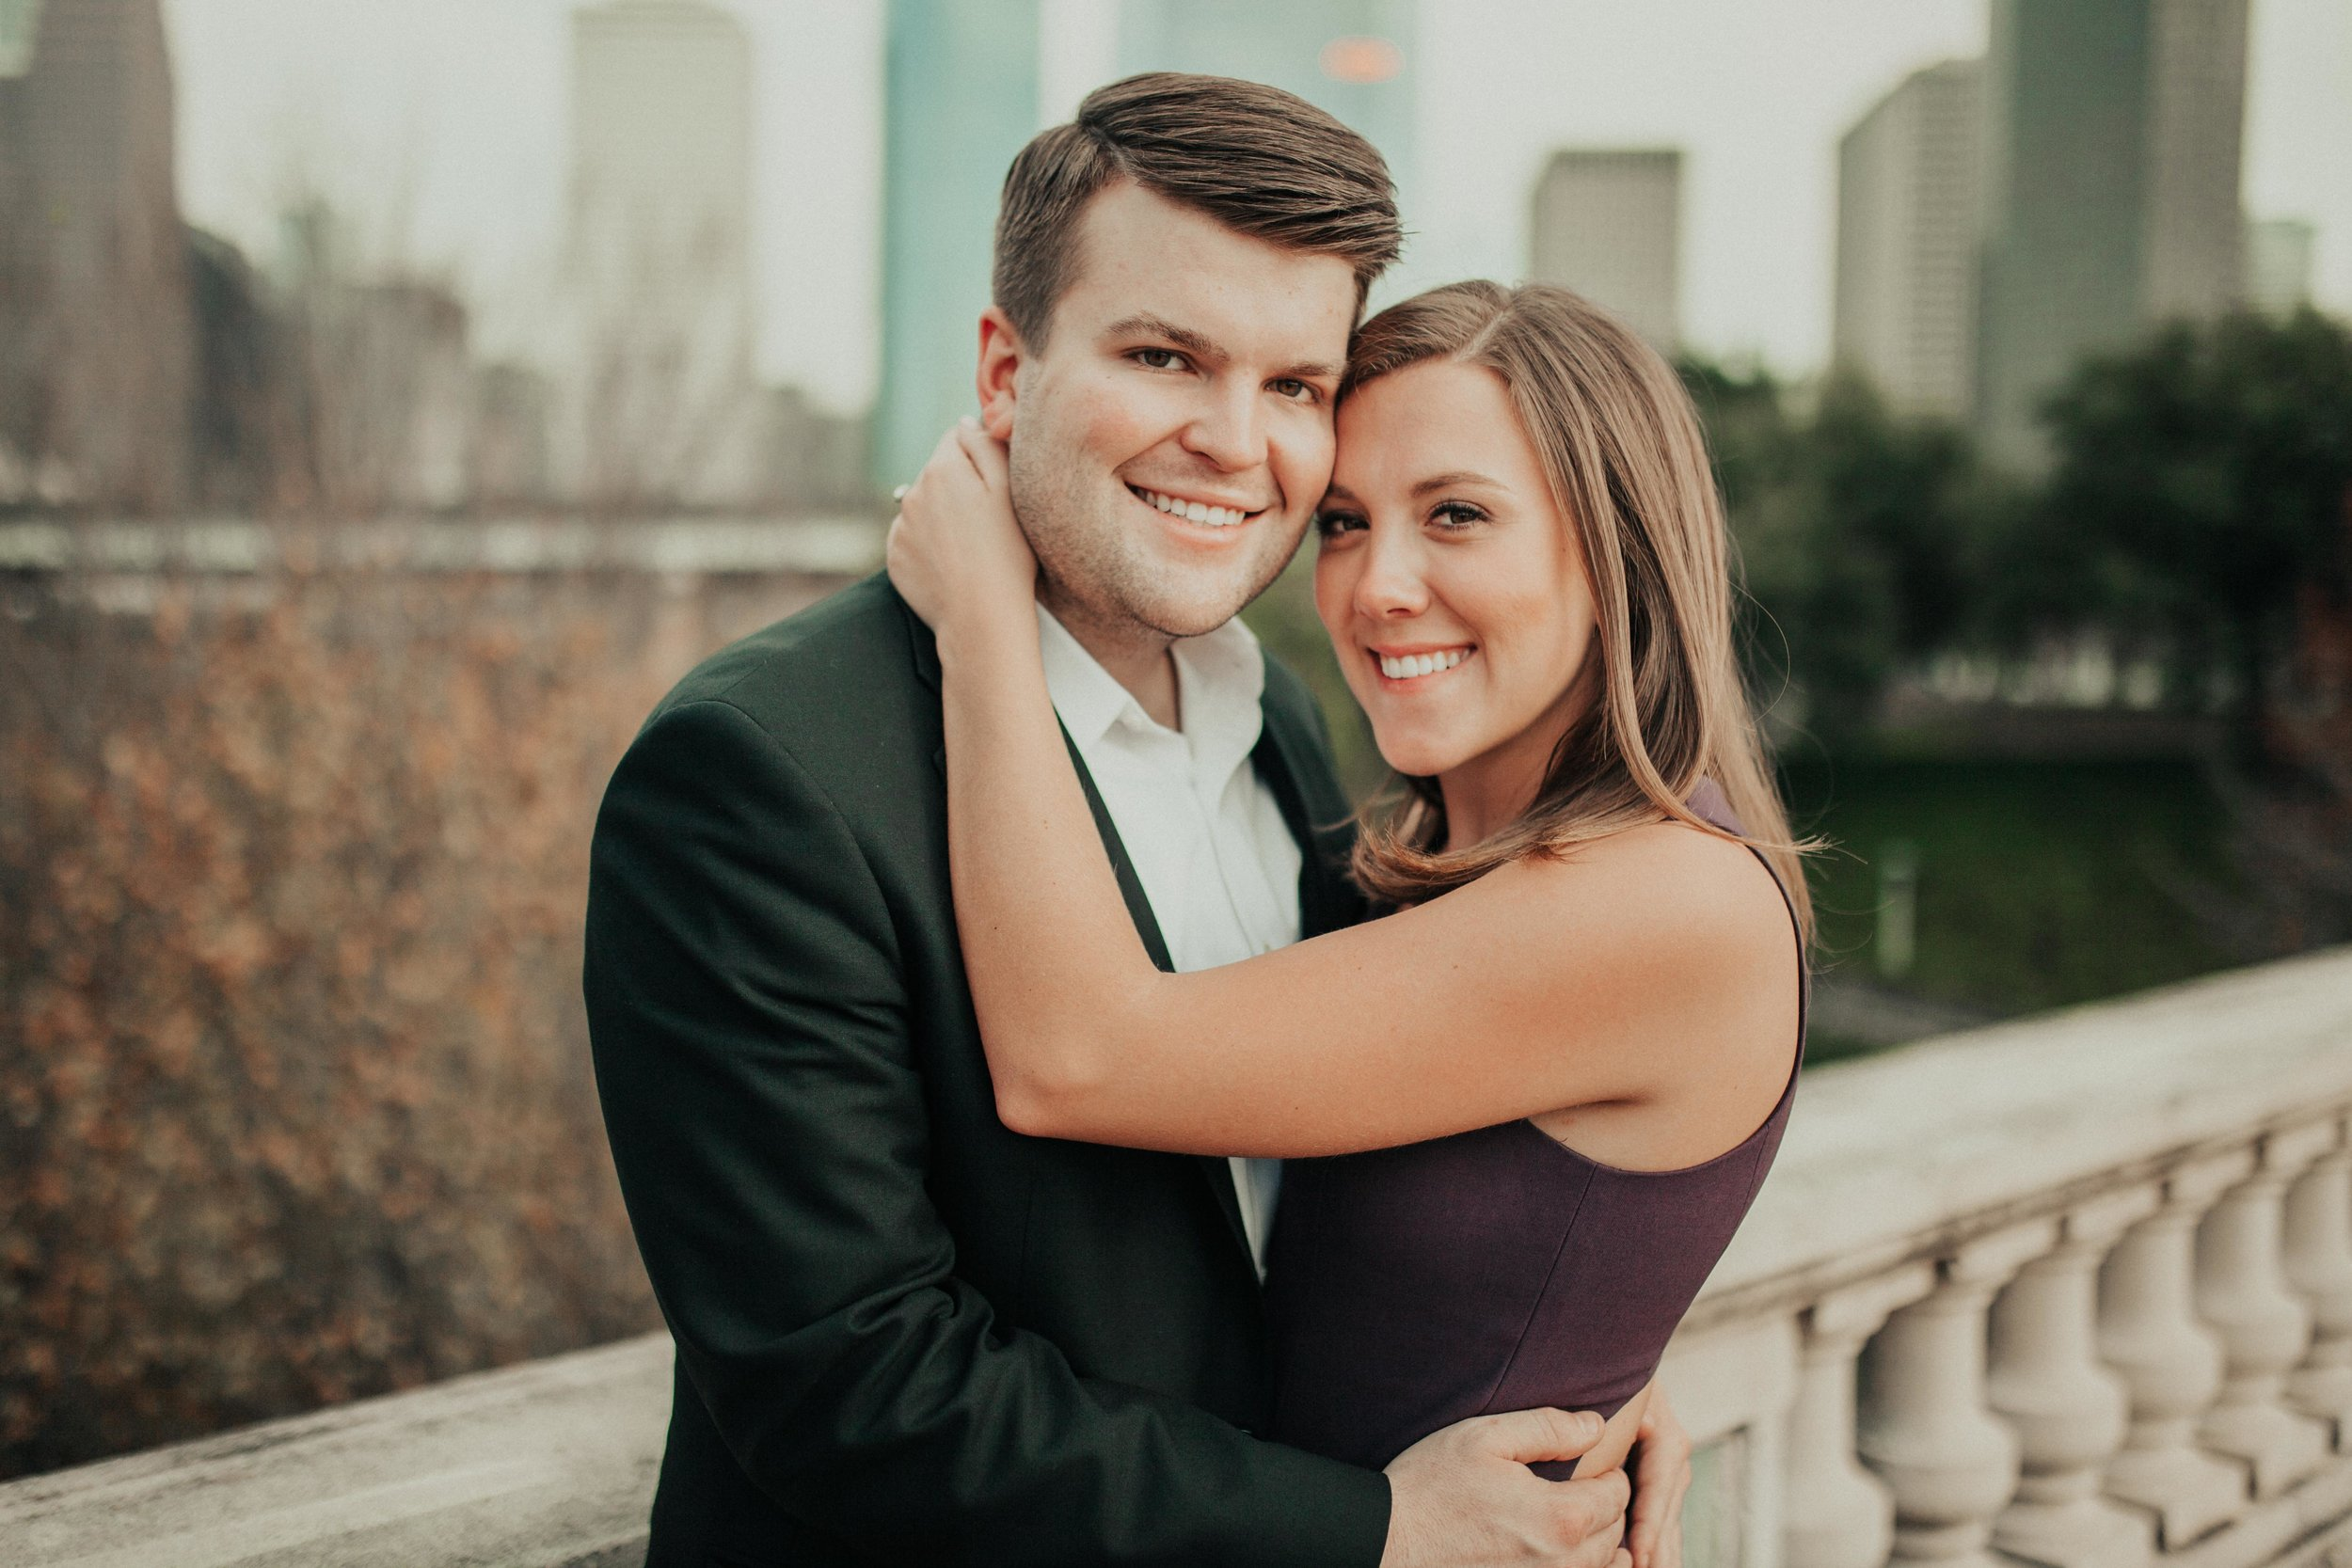 Memorial Park Engagement Session Houston Texas - Madeleine Frost-1222.jpg